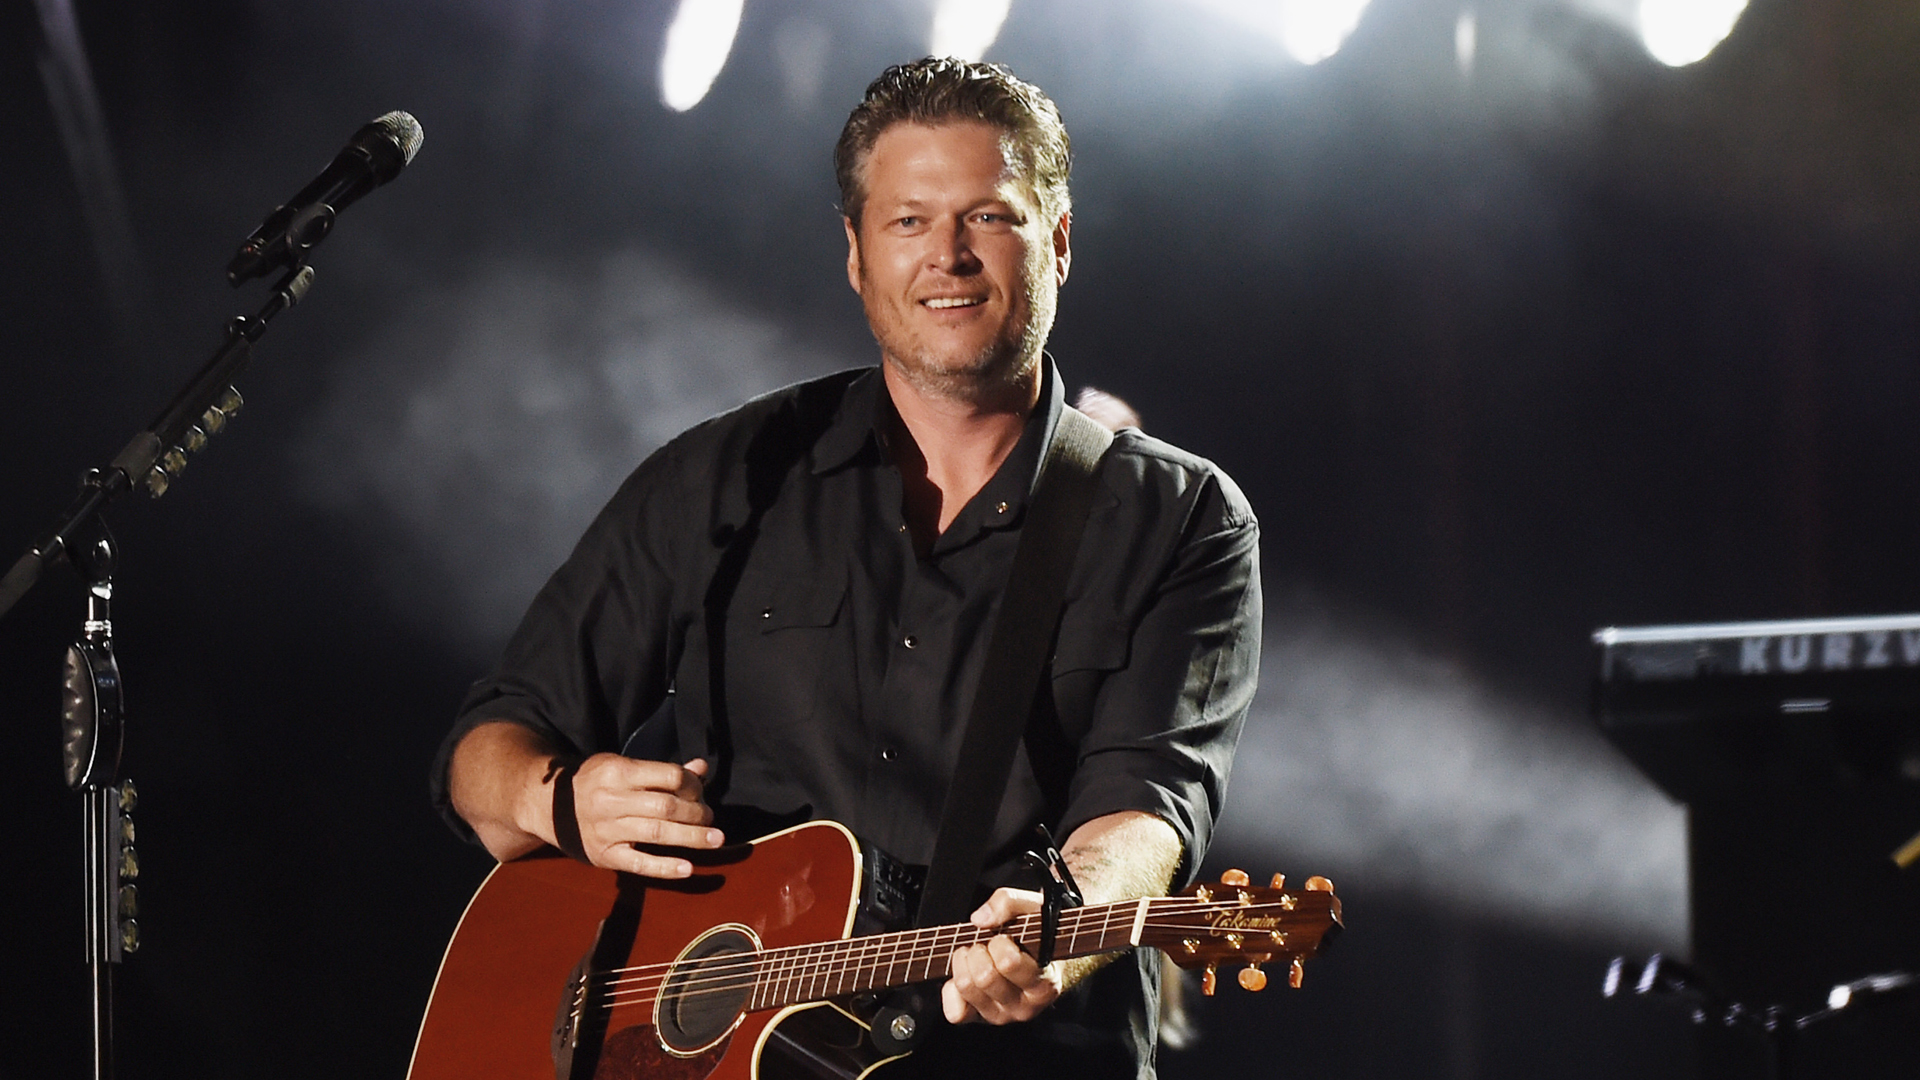 Blake Shelton performs during Happy Valley Jam 2017 in Beaver Stadium on the campus of Penn State University July 8, 2017 in State College, Pennsylvania. (Credit: Rick Diamond/Getty Images for Happy Valley Jam)